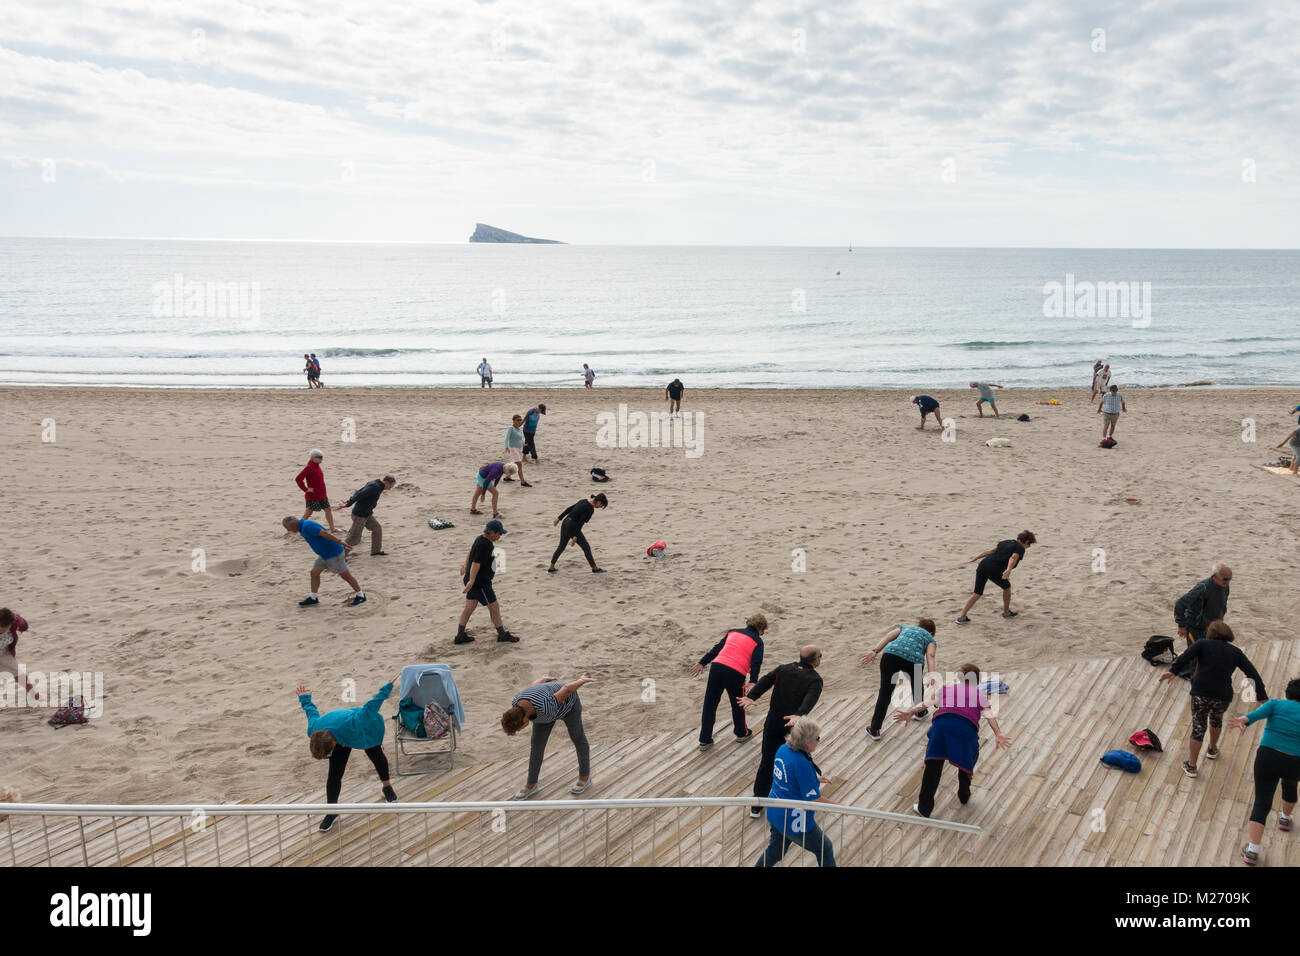 Seniors keeping fit on the beach in Benidorm, Spain. Men women oap's, elderly fitness class - Stock Image